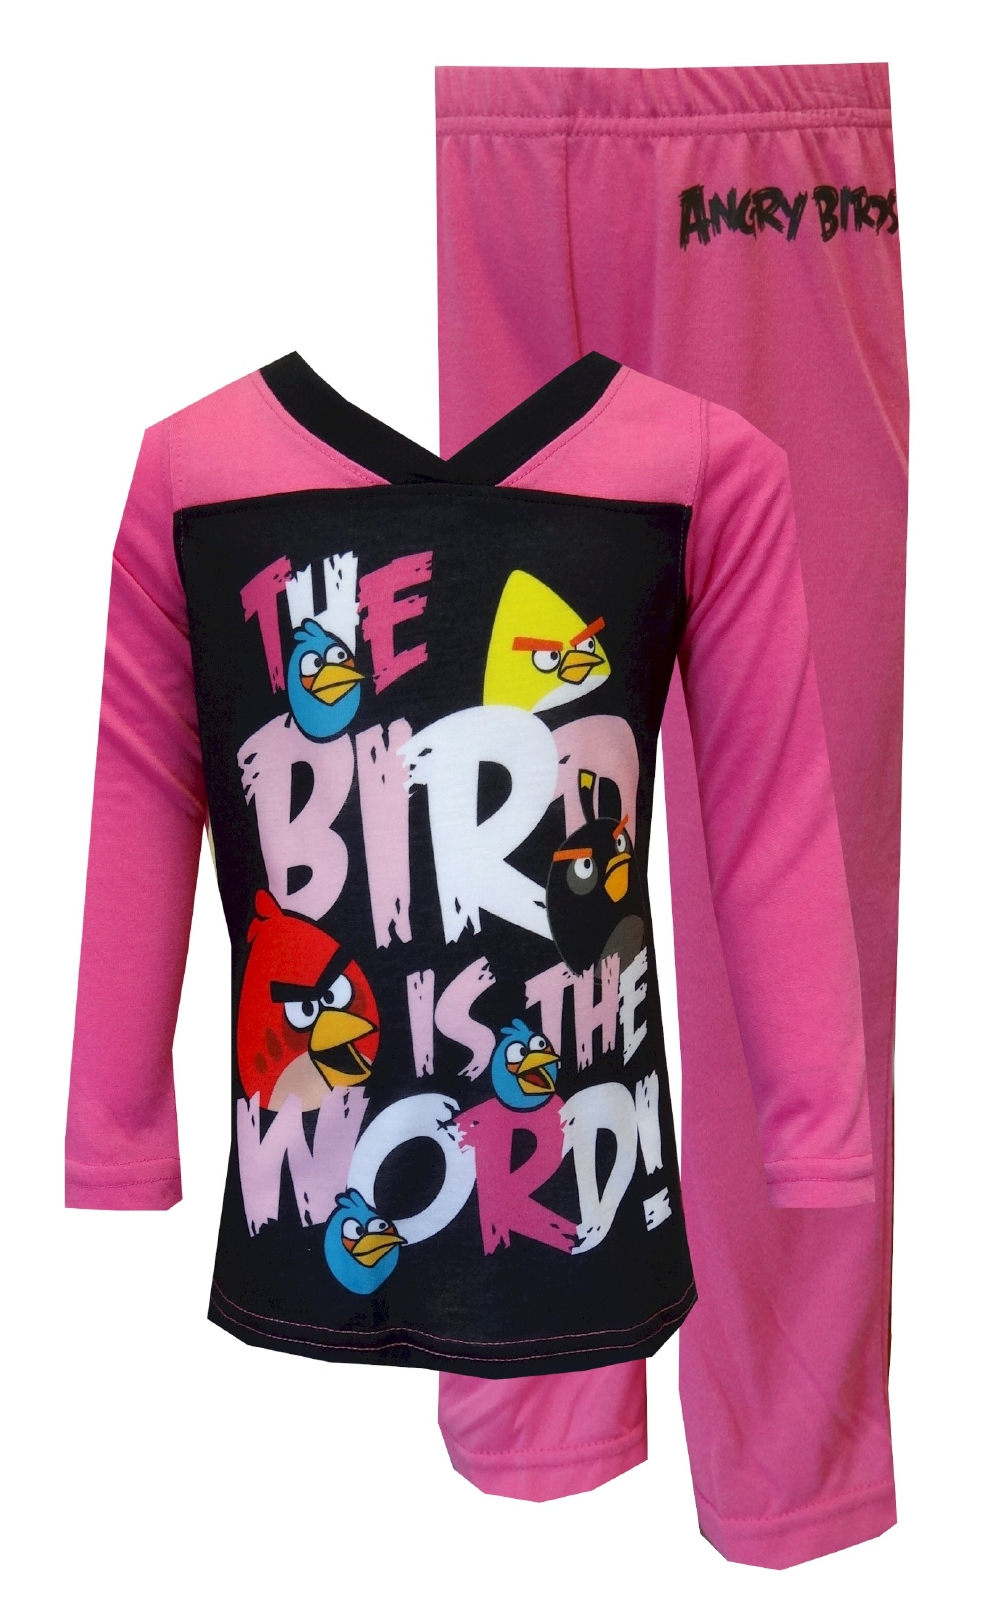 Image of Angry Birds The Bird Is the Word Girls' Pajamas for girls